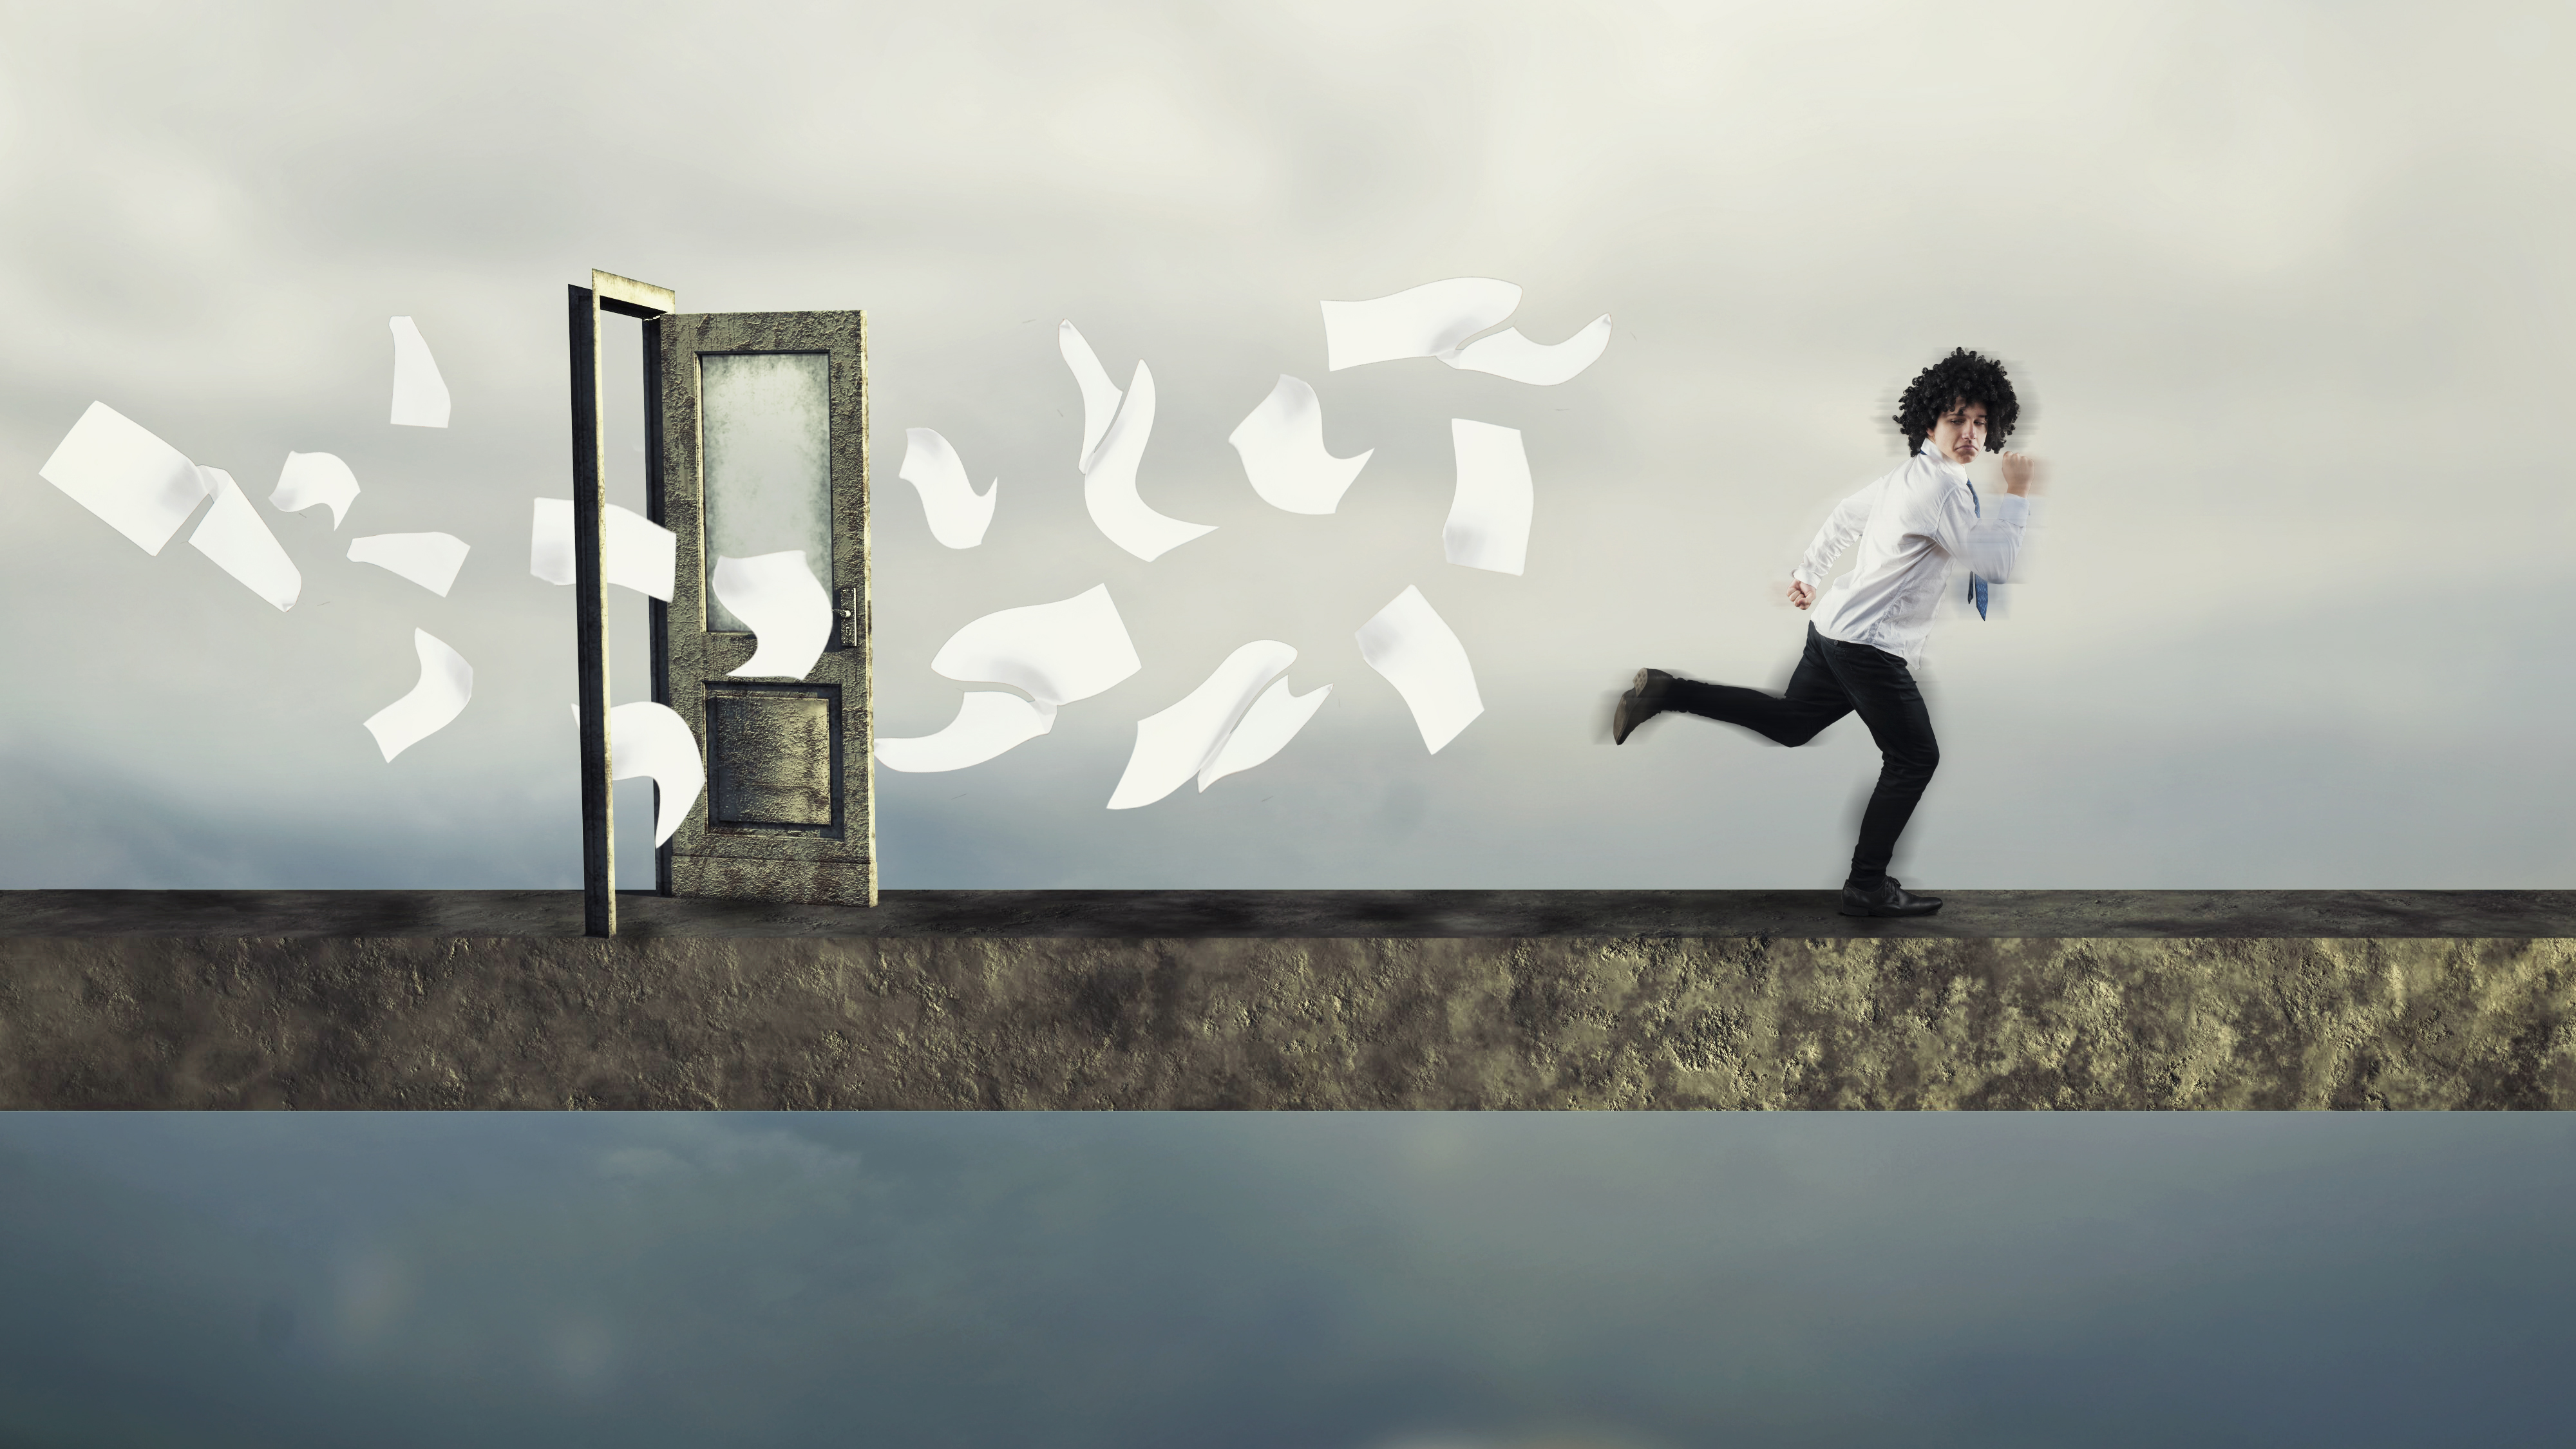 Man running through door from a whirlwind of papers.